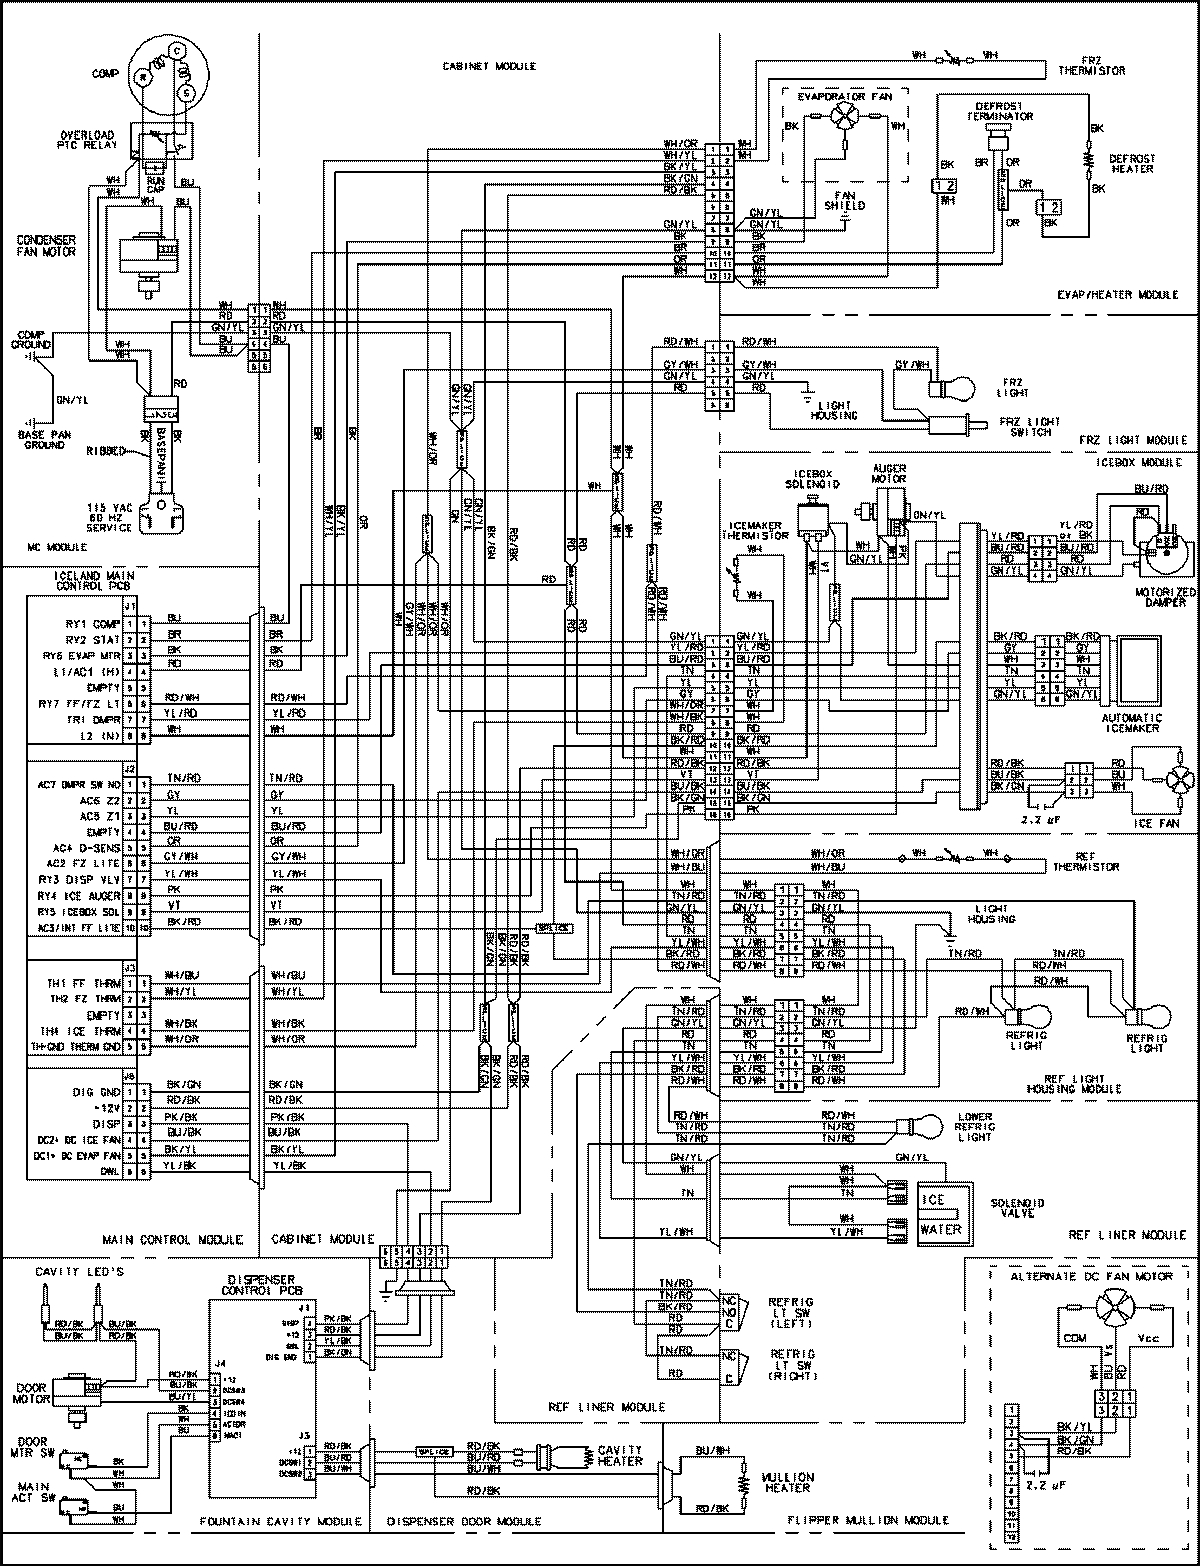 Ge dryer start switch wiring diagram sample wiring diagram sample wiring diagram pics detail name ge dryer start switch wiring diagram ge dryer wiring diagram cheapraybanclubmaster Gallery